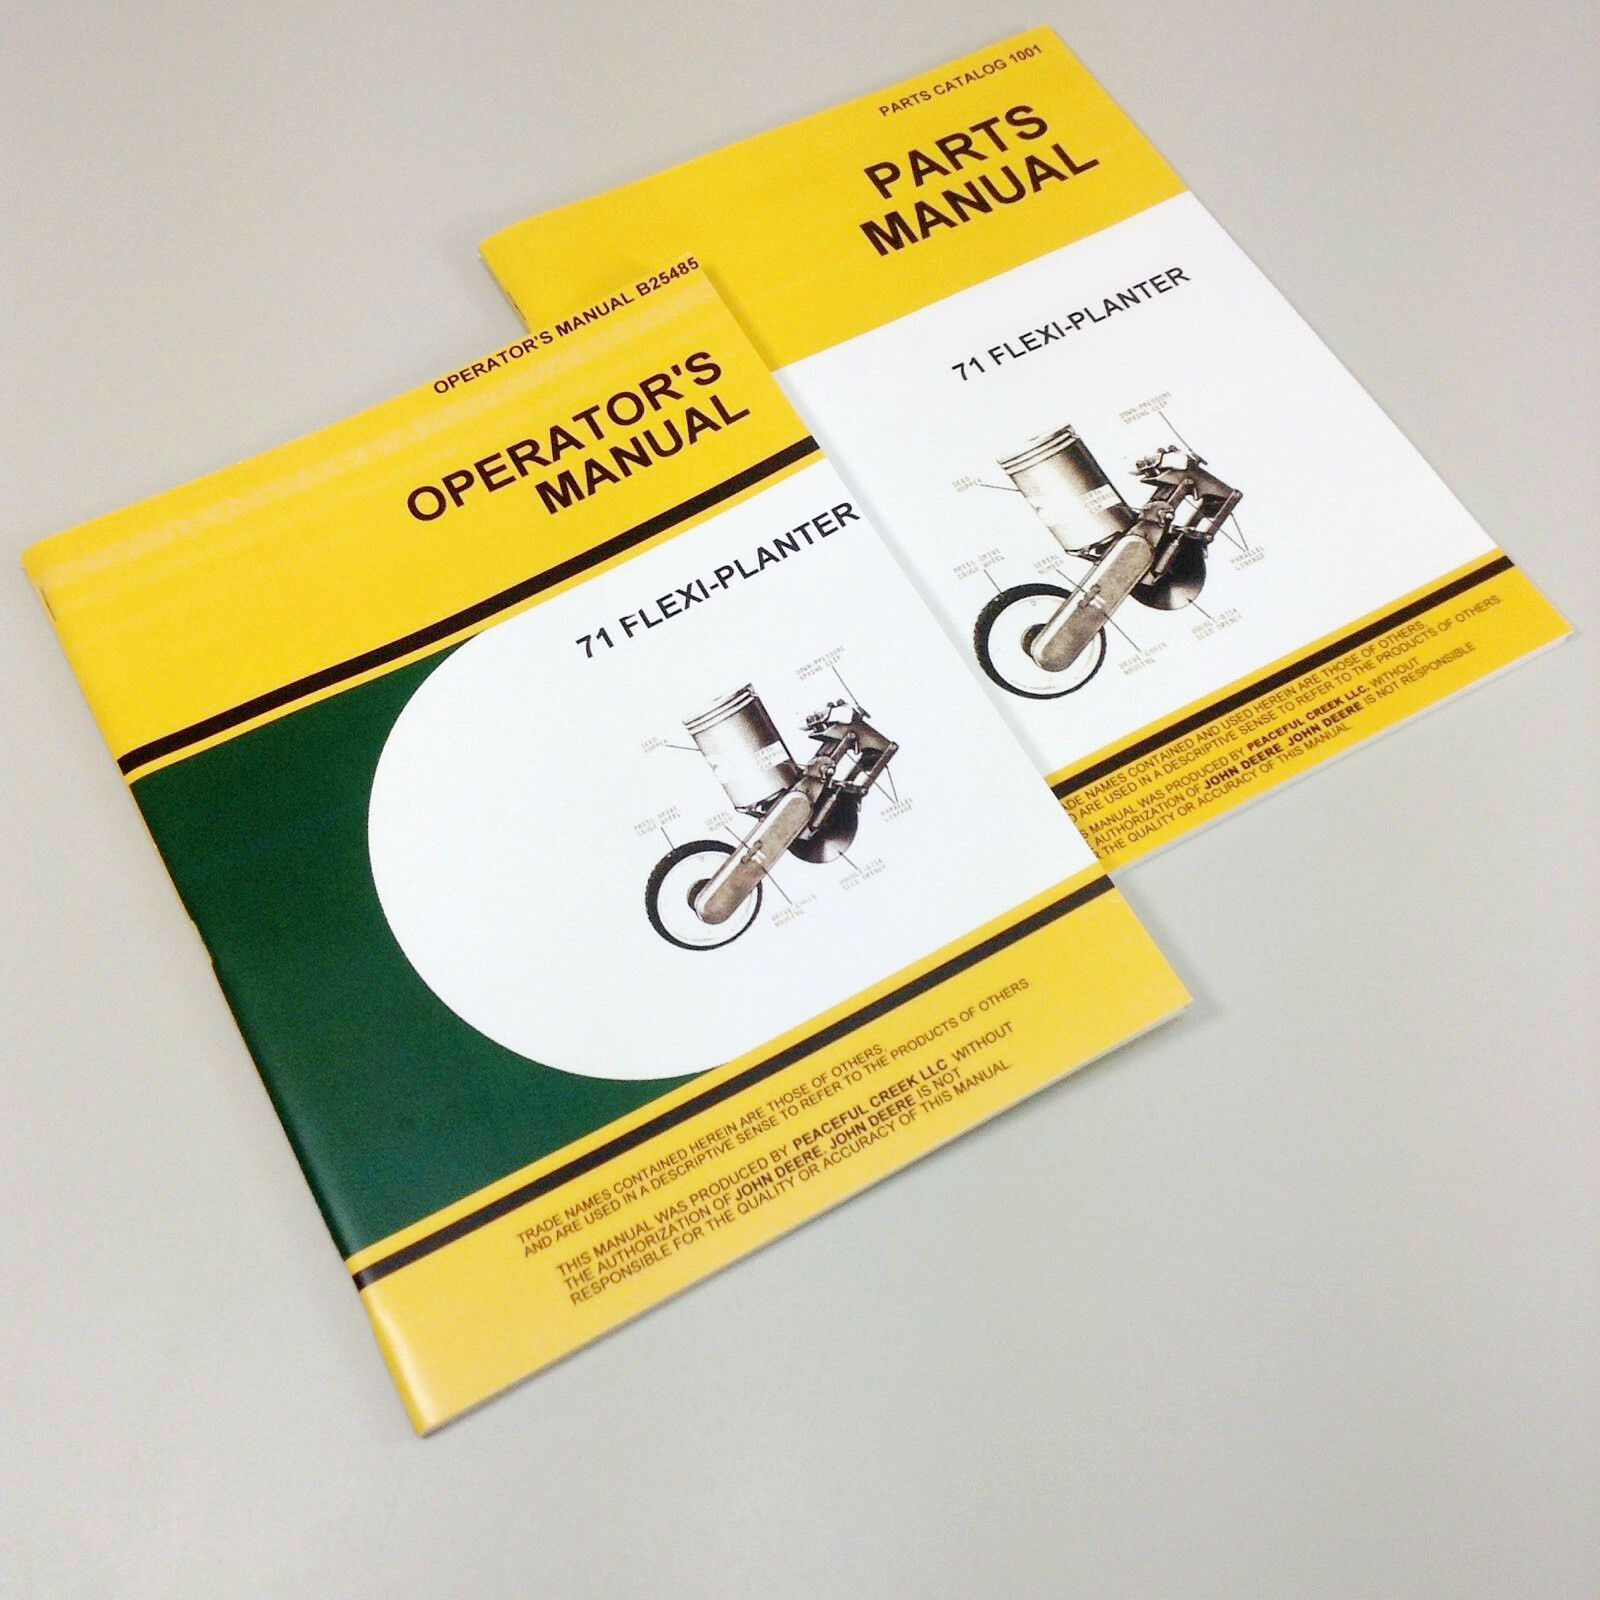 Operators Parts Manual Set For John Deere 71 Flexi Planter Owners Catalog  Corn 1 of 7FREE Shipping ...